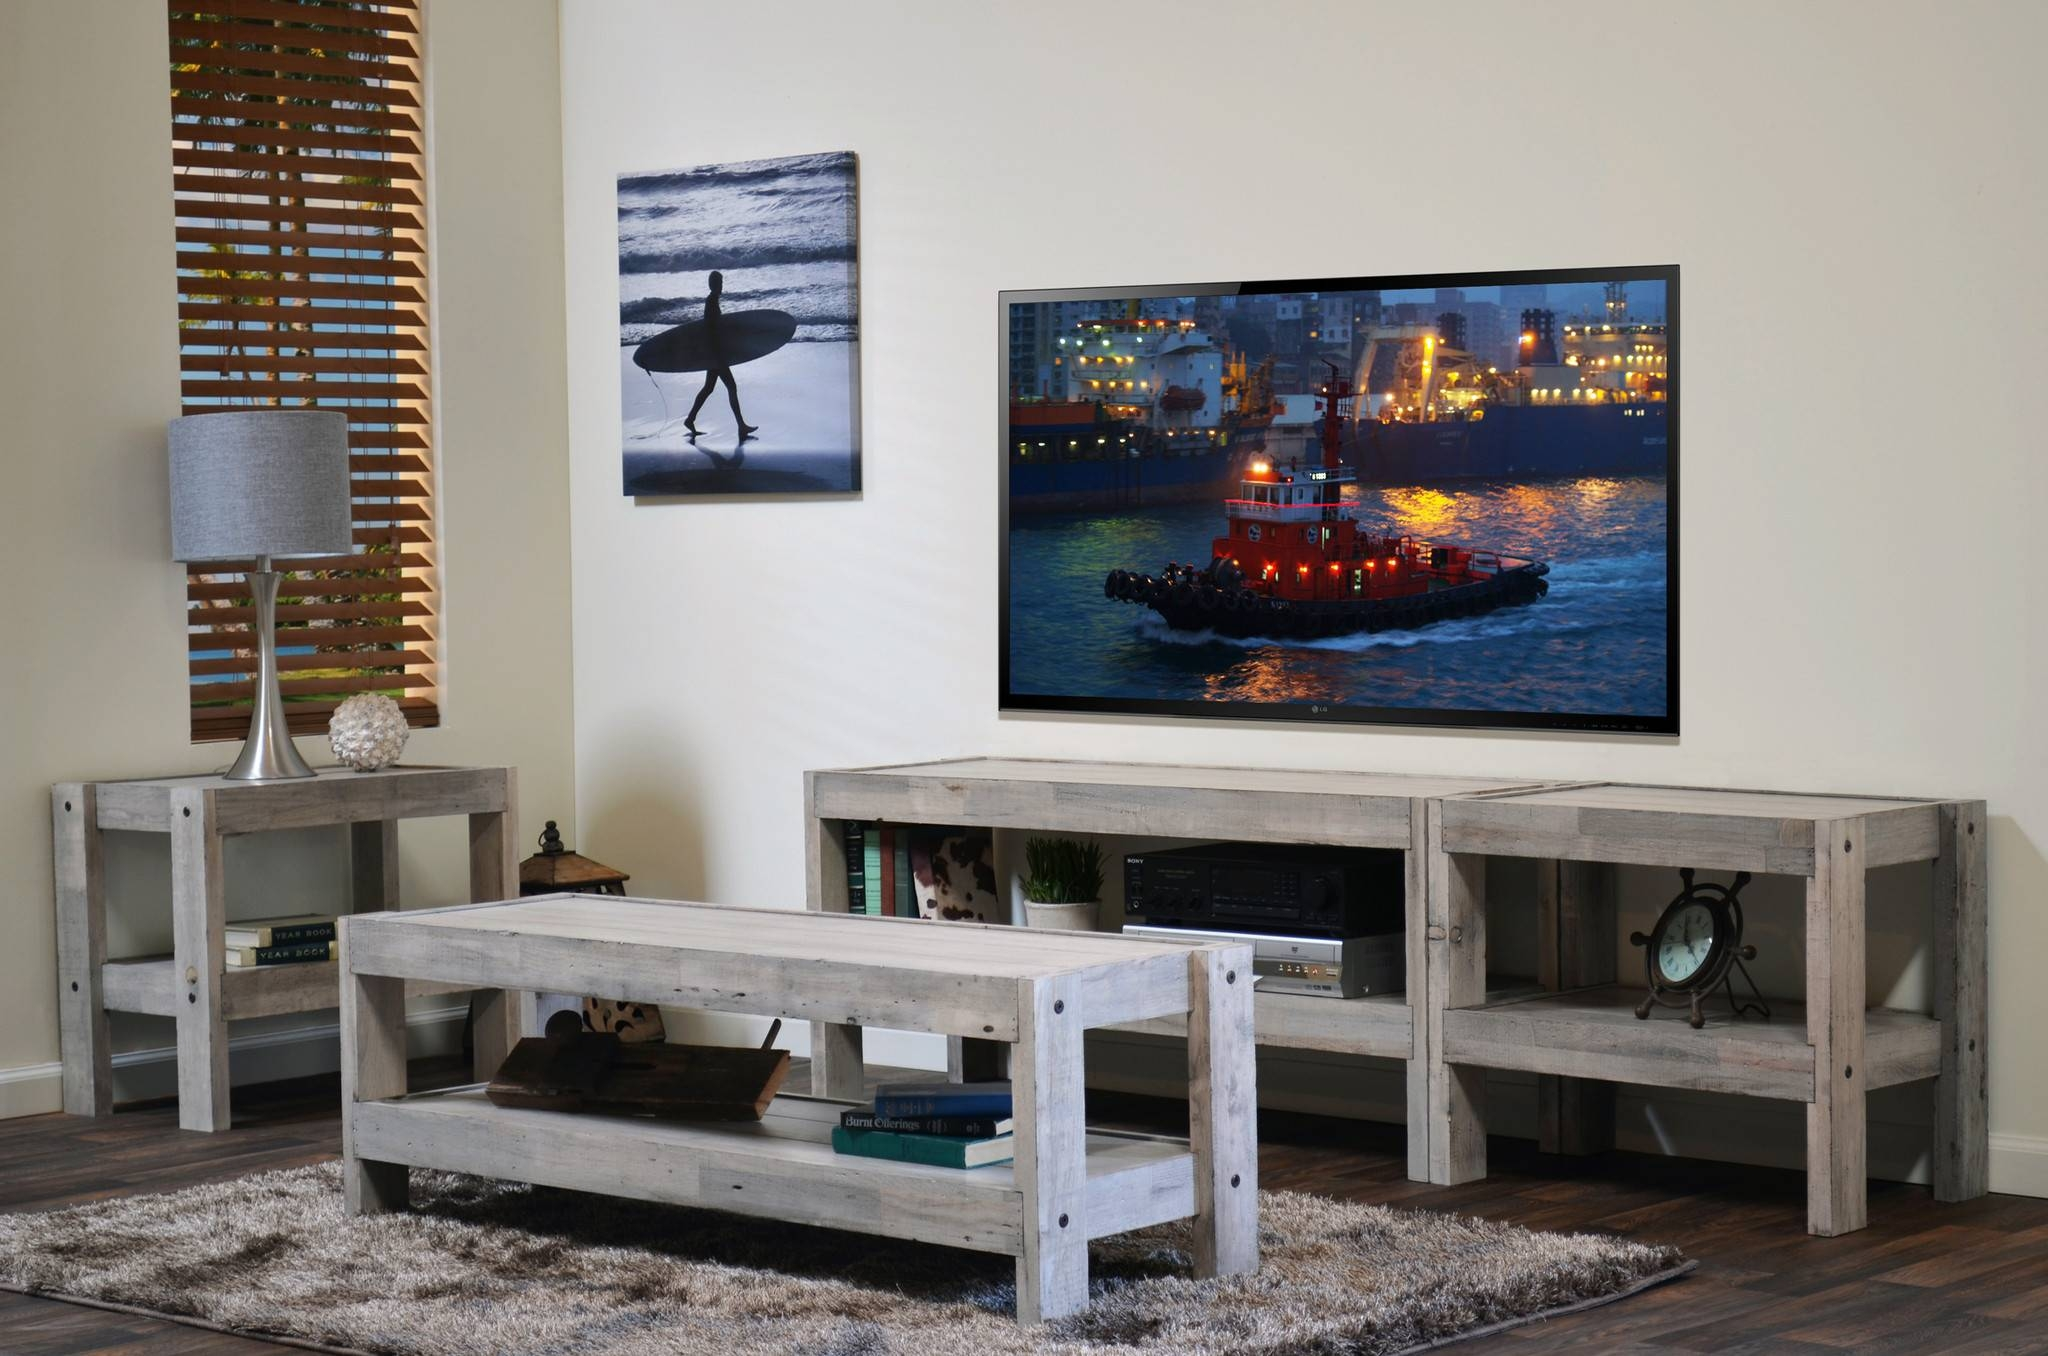 Tv Stands. Amusing Beachy Tv Stand 2017 Ideas: Beachy-Tv-Stand intended for Rustic Coffee Tables And Tv Stands (Image 24 of 30)